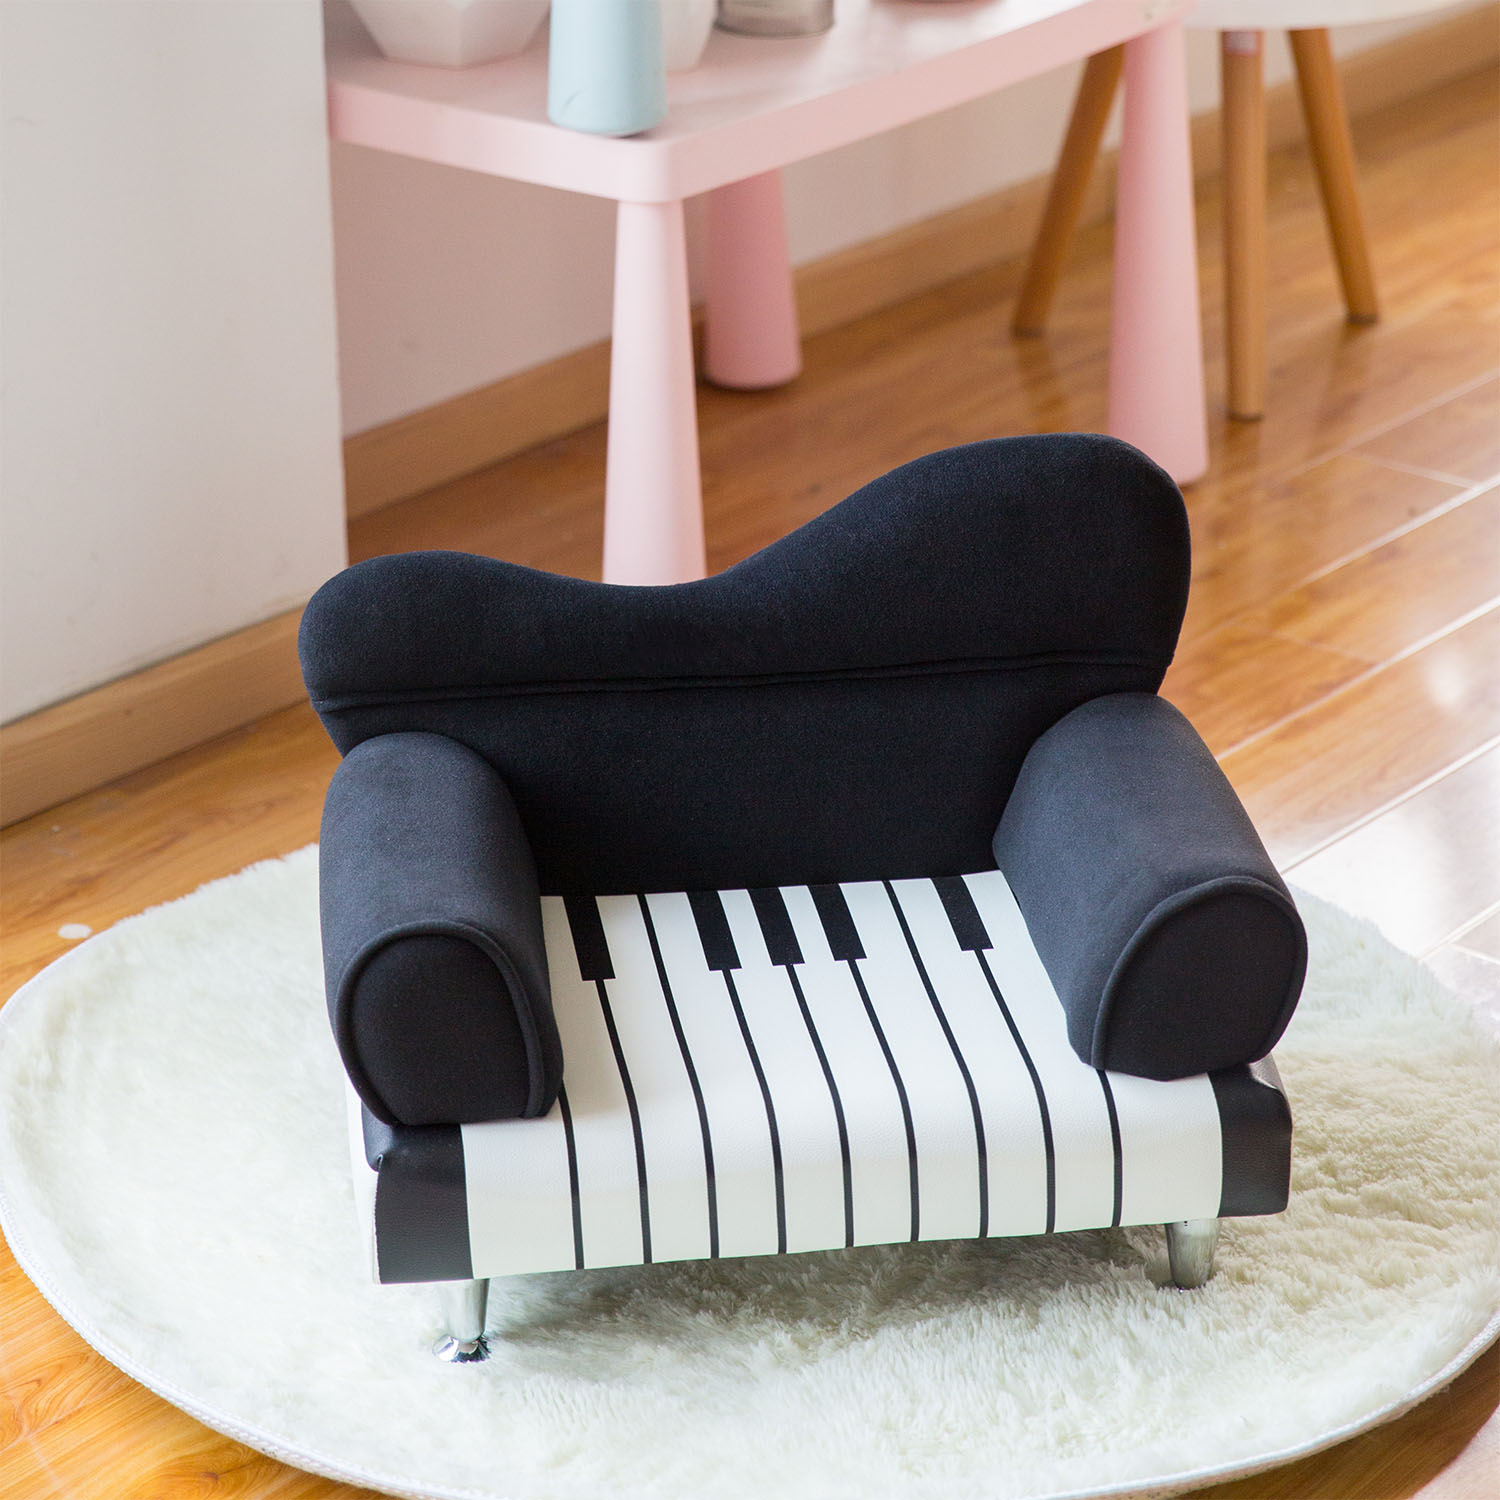 Kinbor Piano Kids Sofa Leather Upholstered Couch Sturdy Wood Construction Armrest Chair for Preschool Children